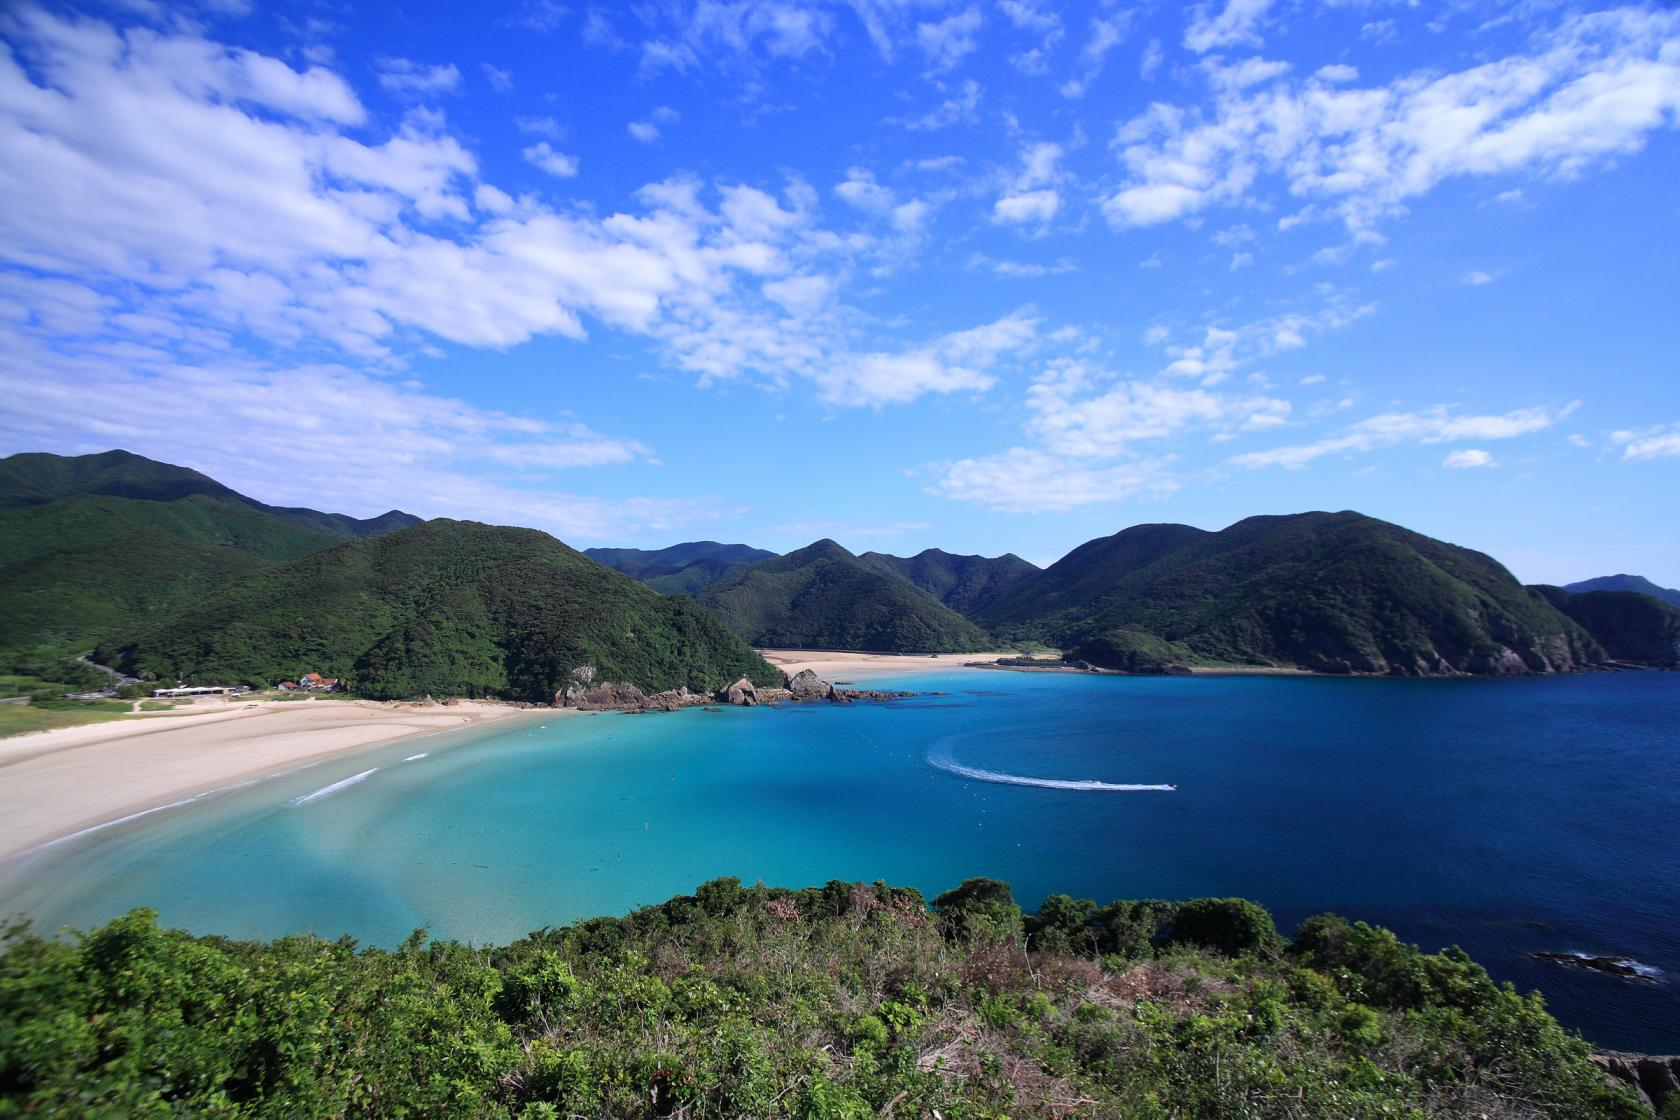 Top 5 Things to Do in Goto Islands (Shimogoto)-1